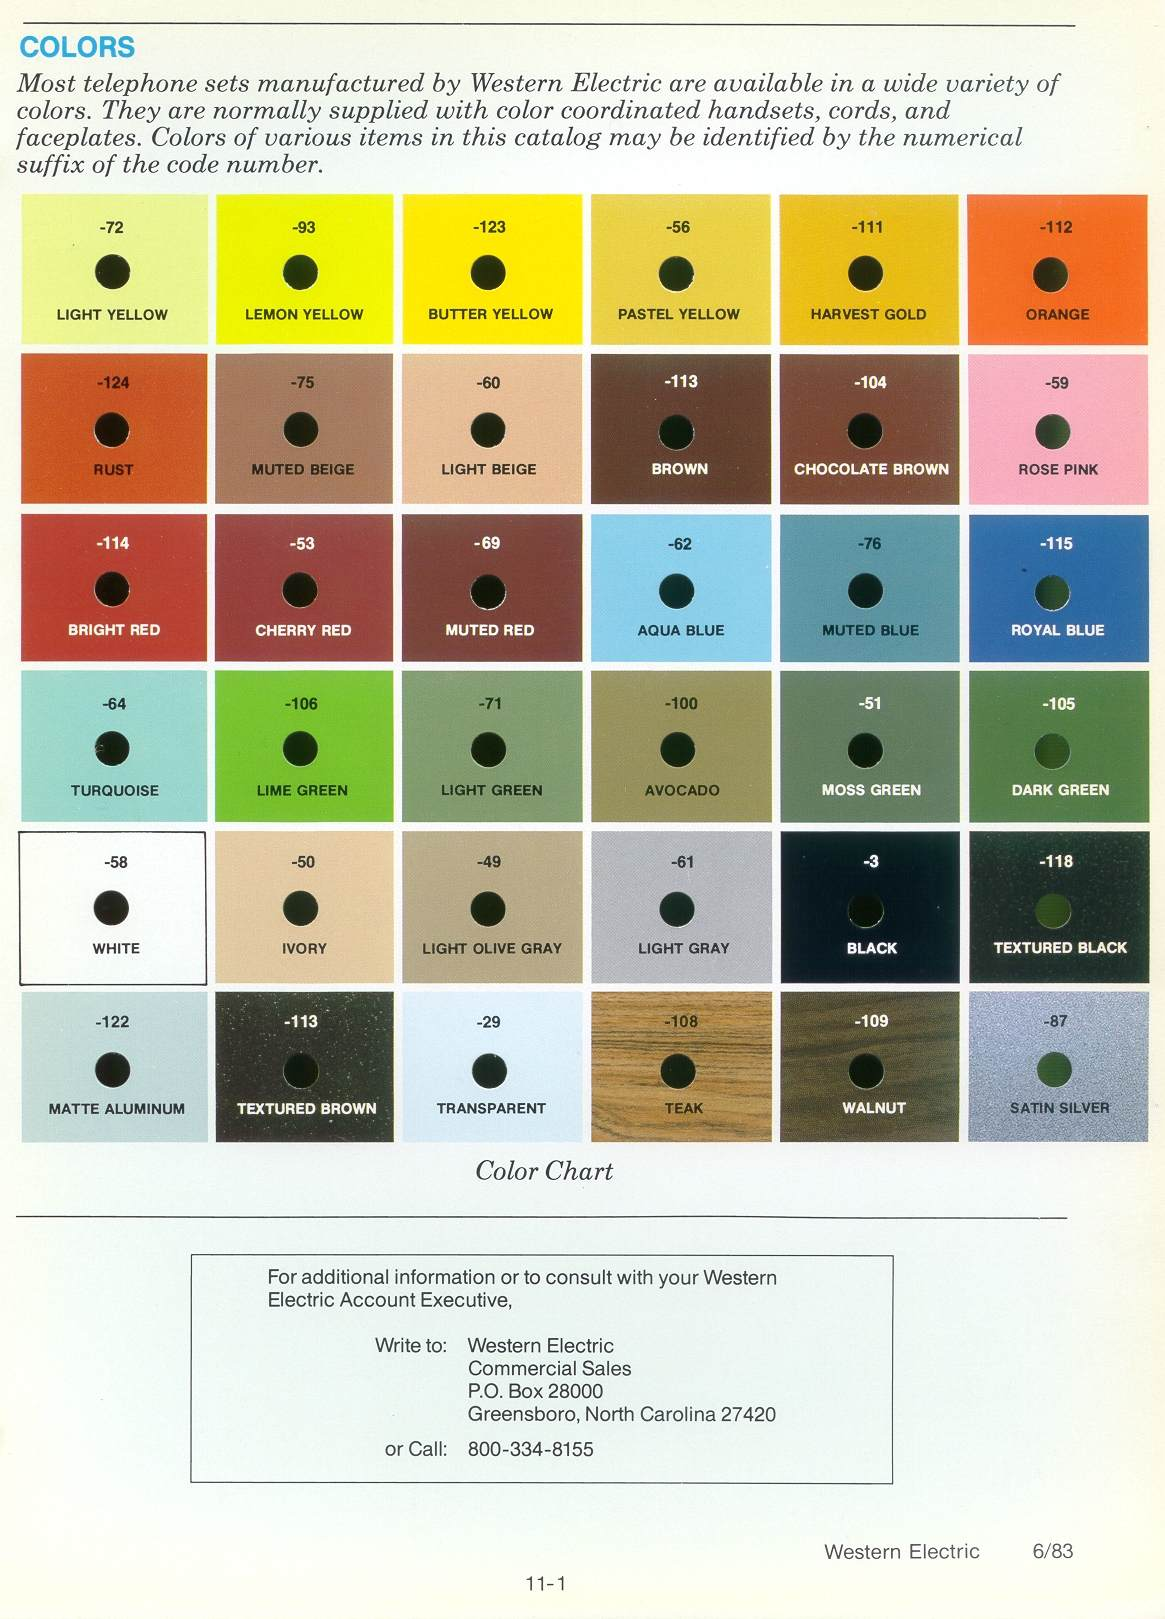 Phone Wiring Color Chart Manual Of Diagram Telephone Codes Western Electric Rh Paul F Com Wire